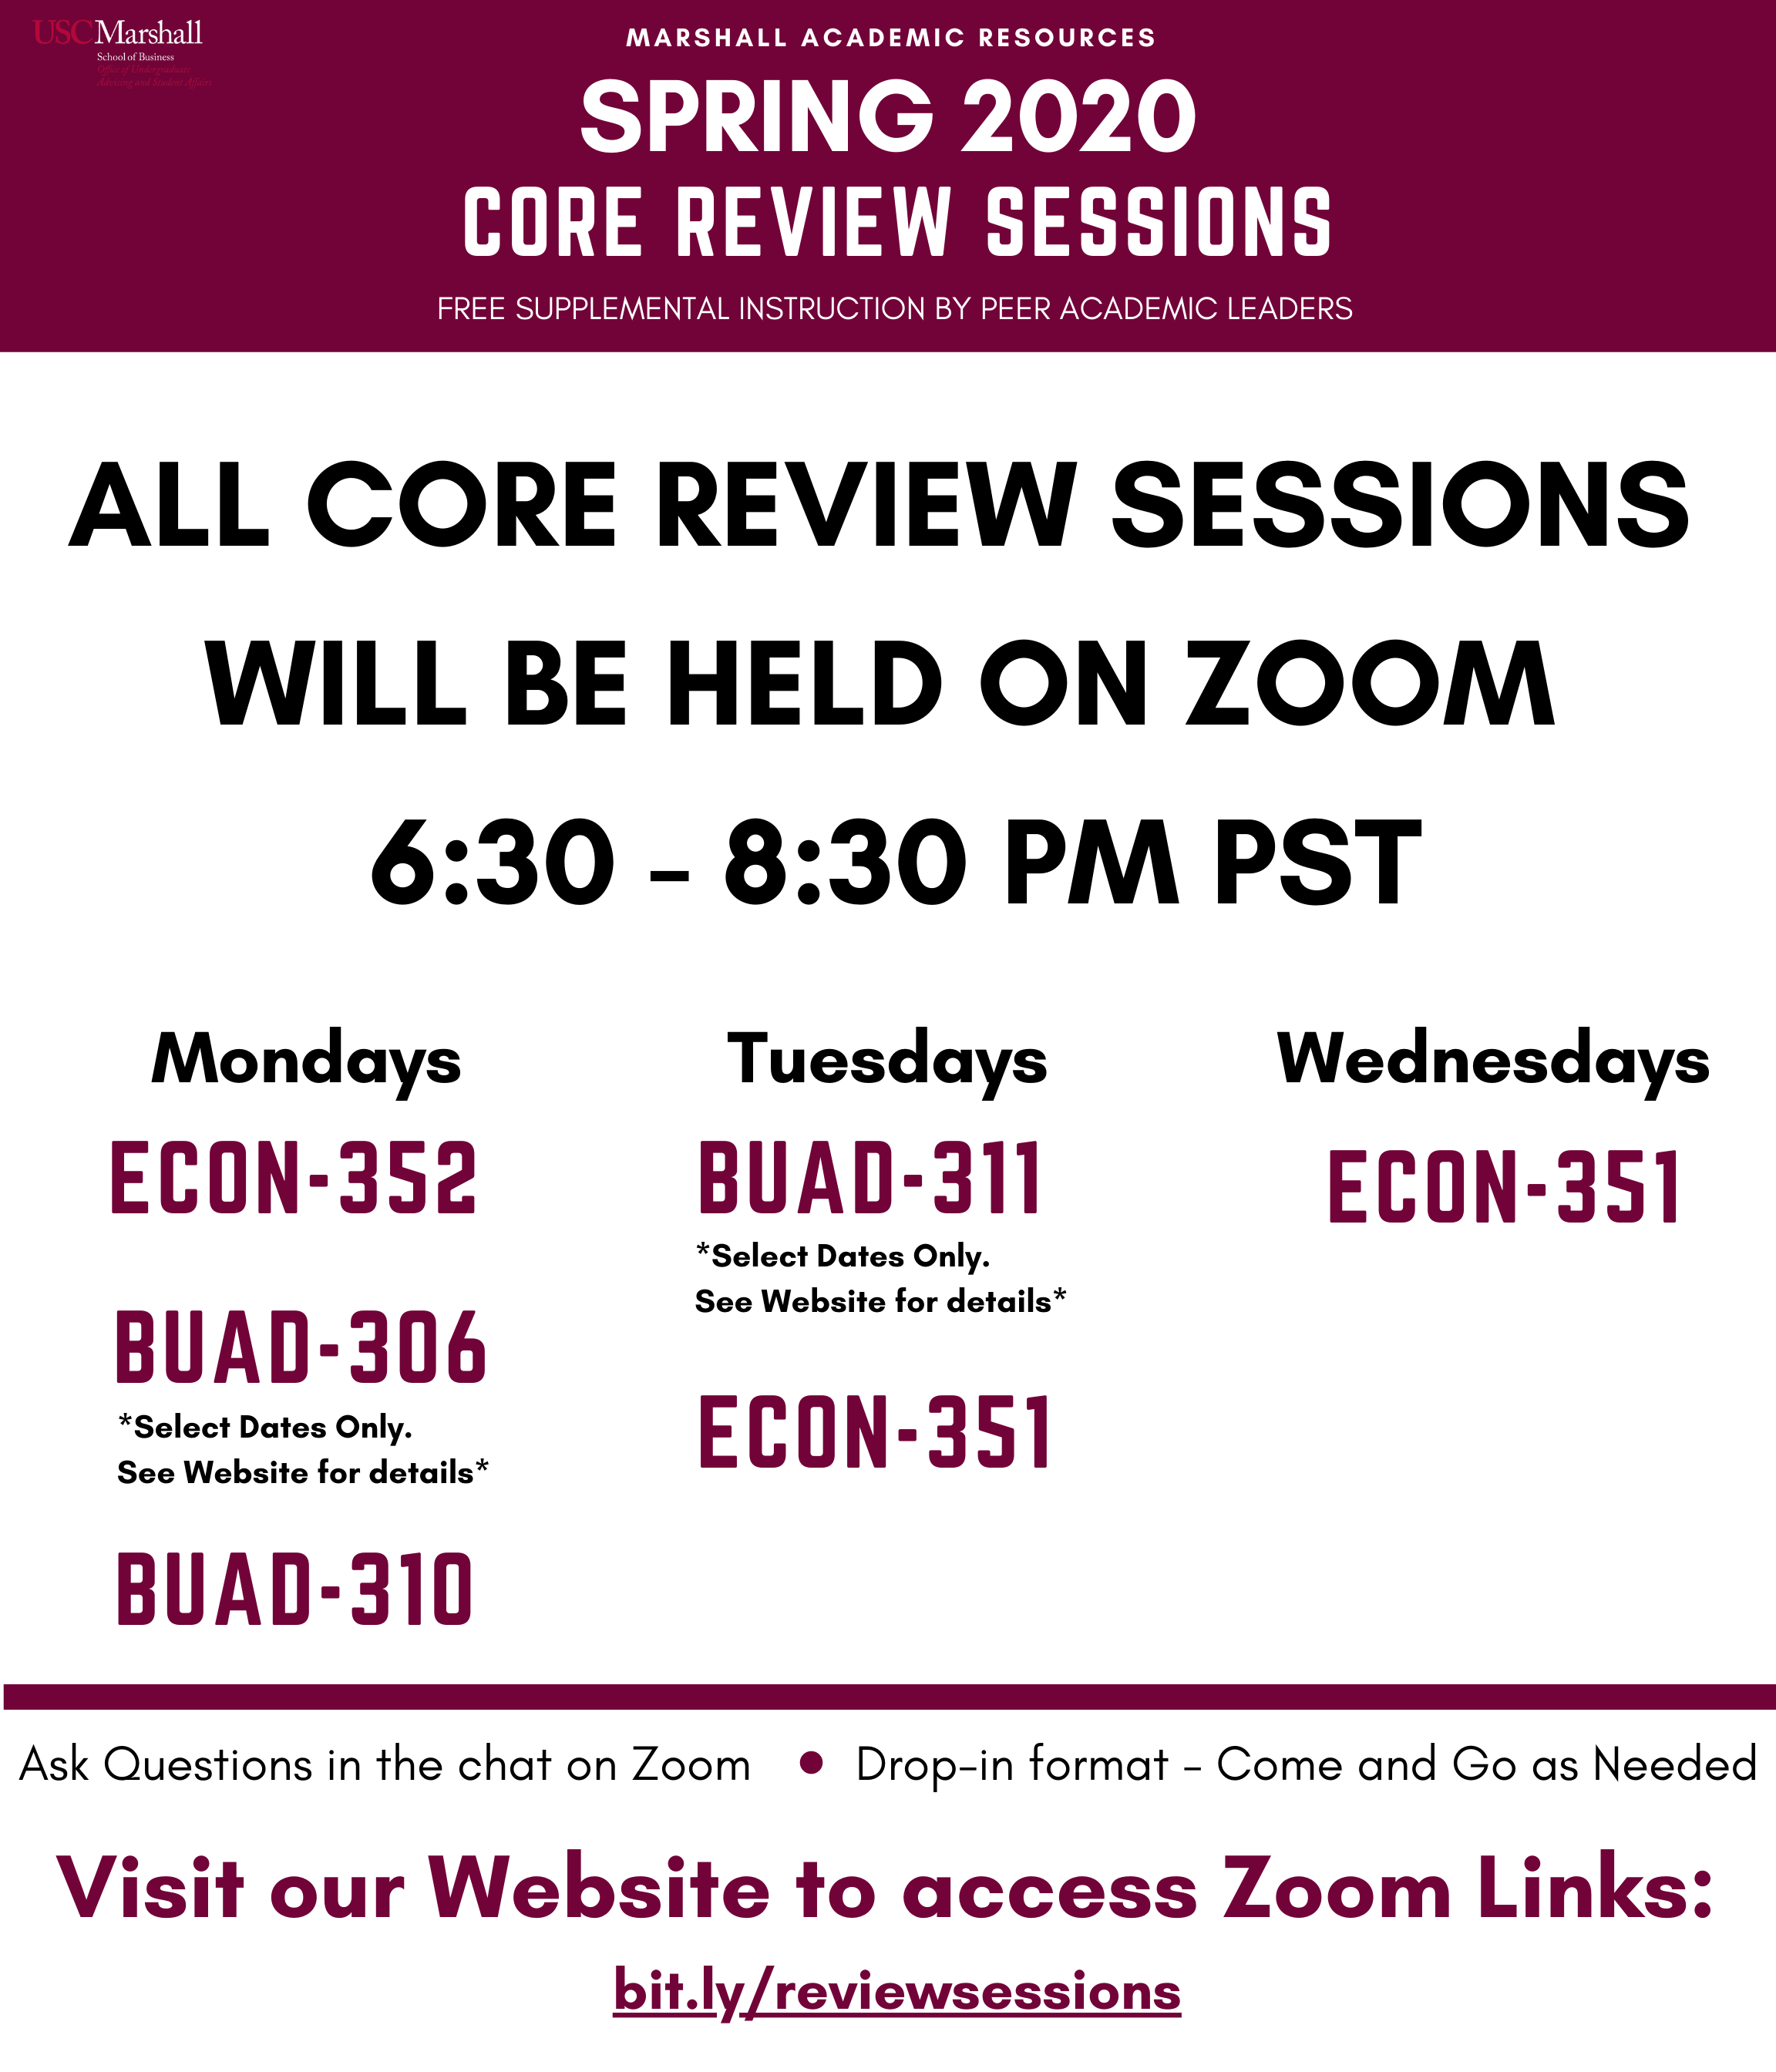 ALL CORE REVIEW SESSIONS FOR ECON 351, 352, BUAD 281, 306, 310 & 311 WILL BE HELD ON ZOOM